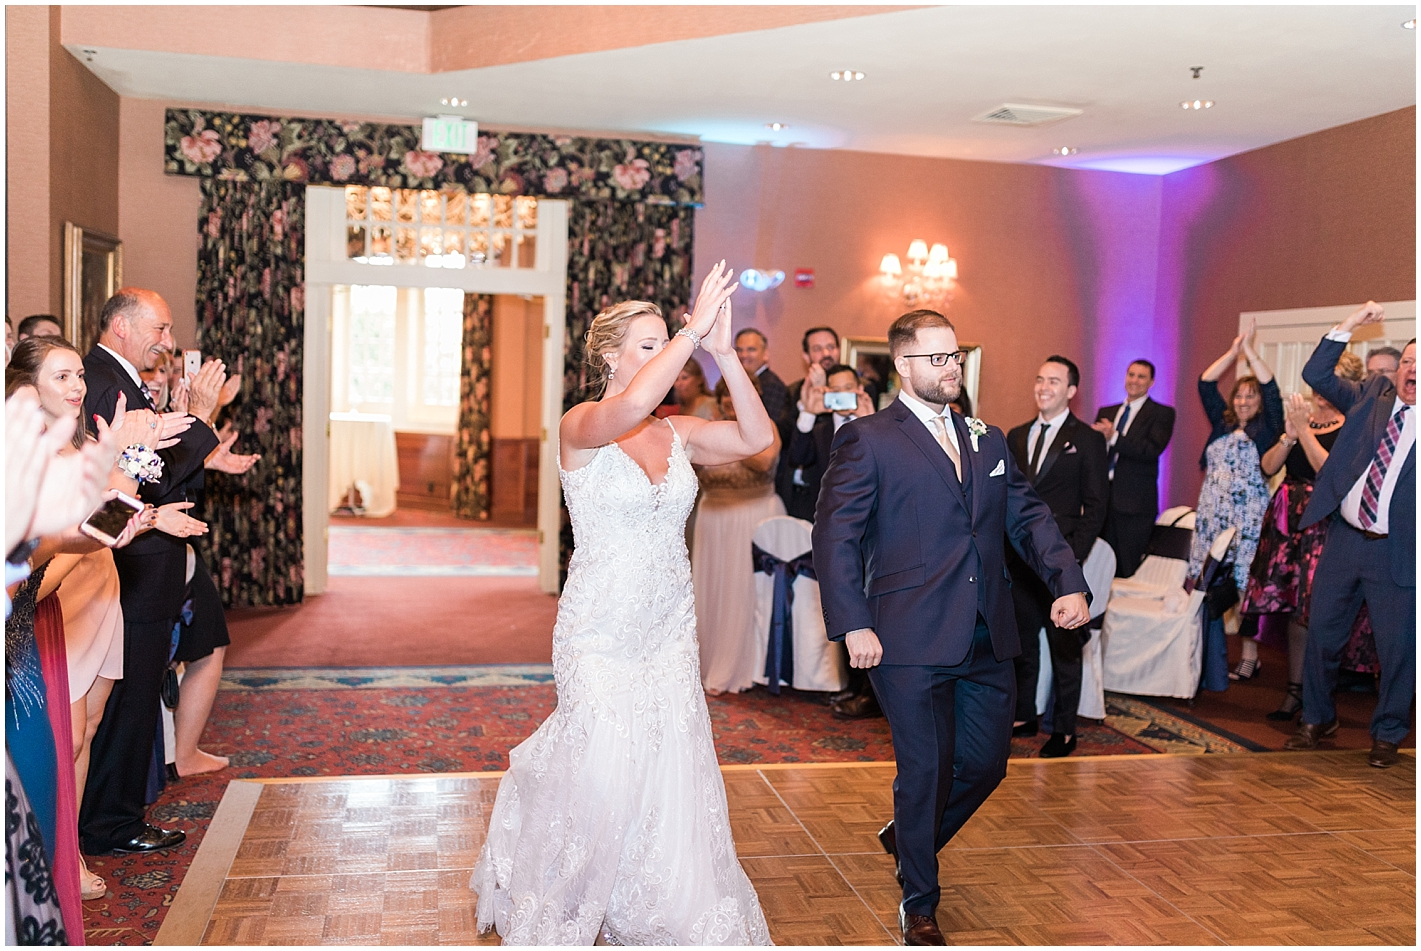 Bride and Groom Introductions in Ballroom Photos by Alyssa Parker Photography